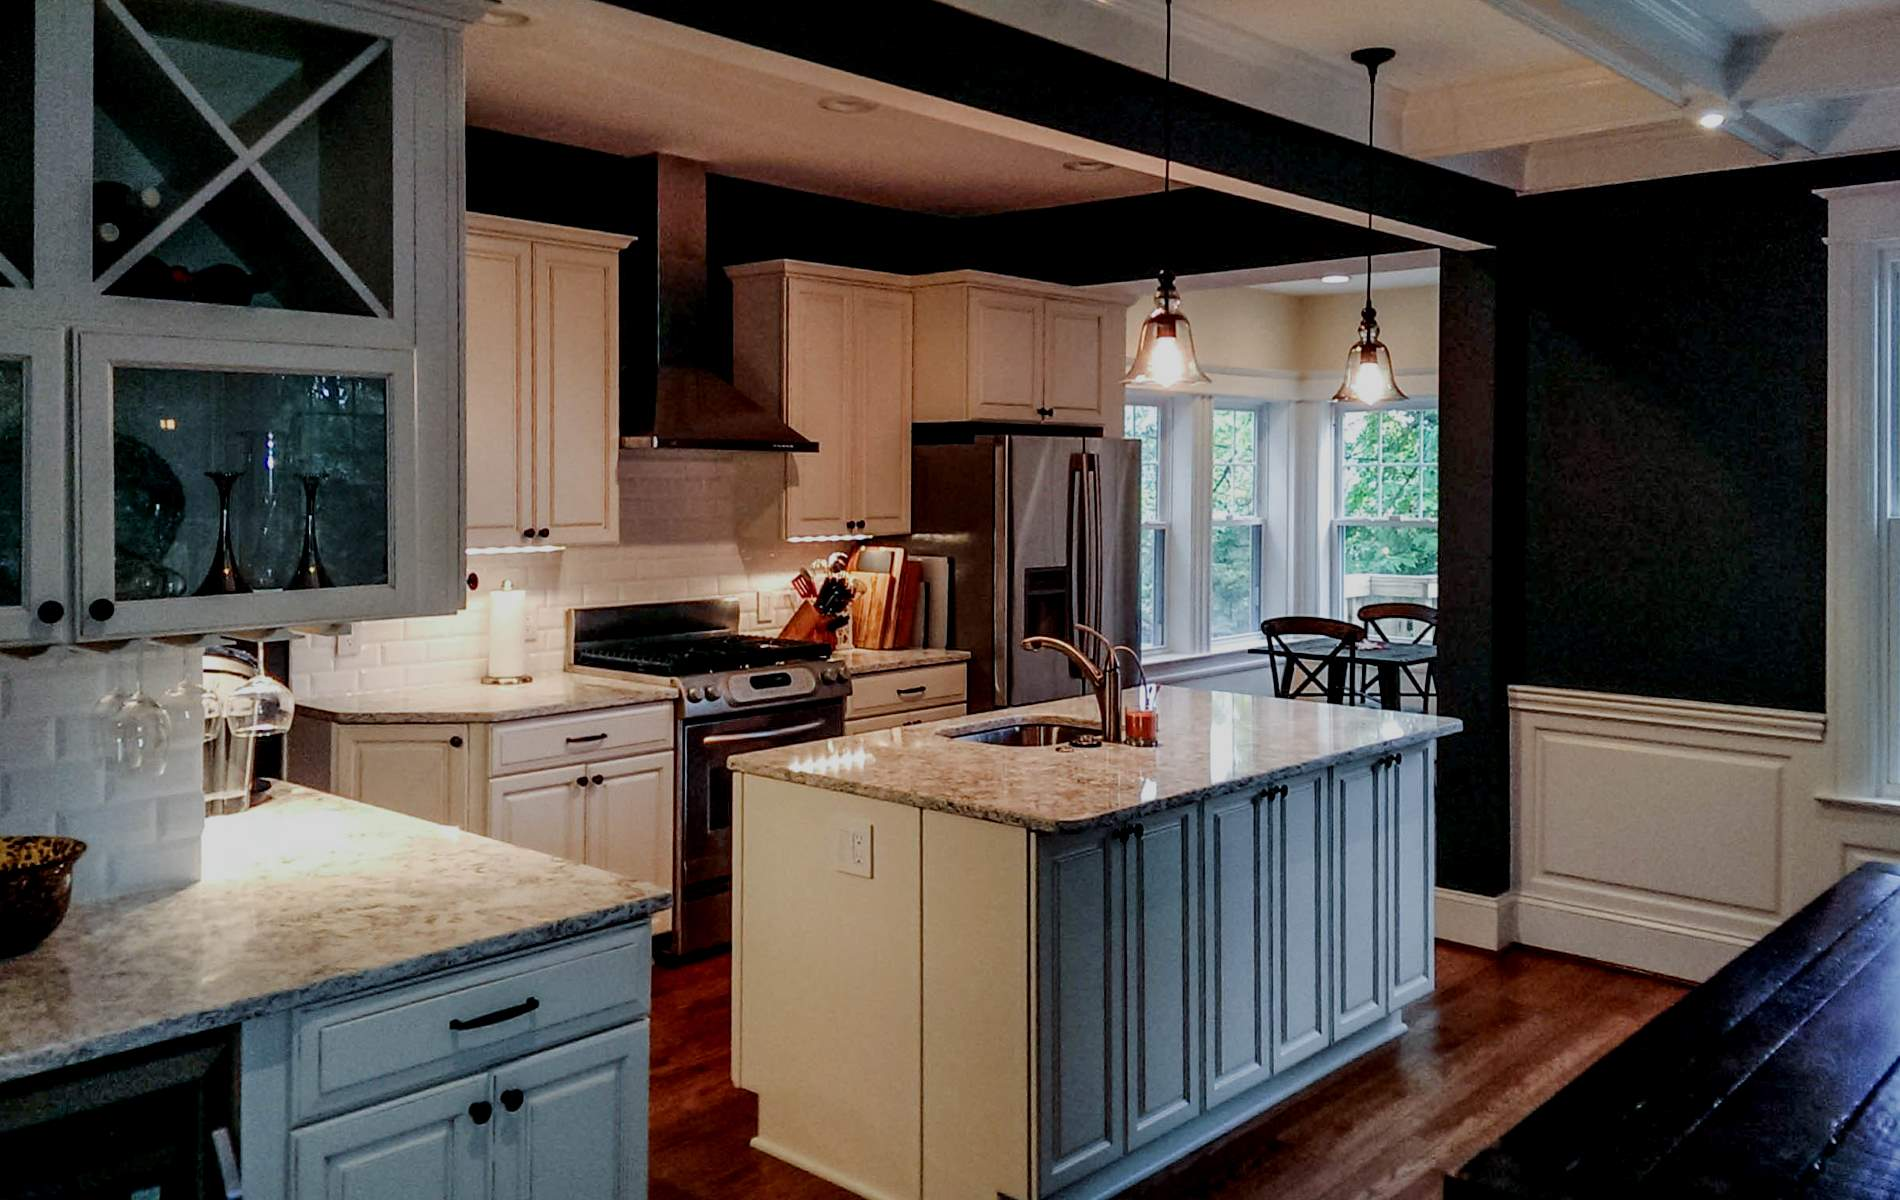 Spring is in the air and so is Springfield home remodeling.